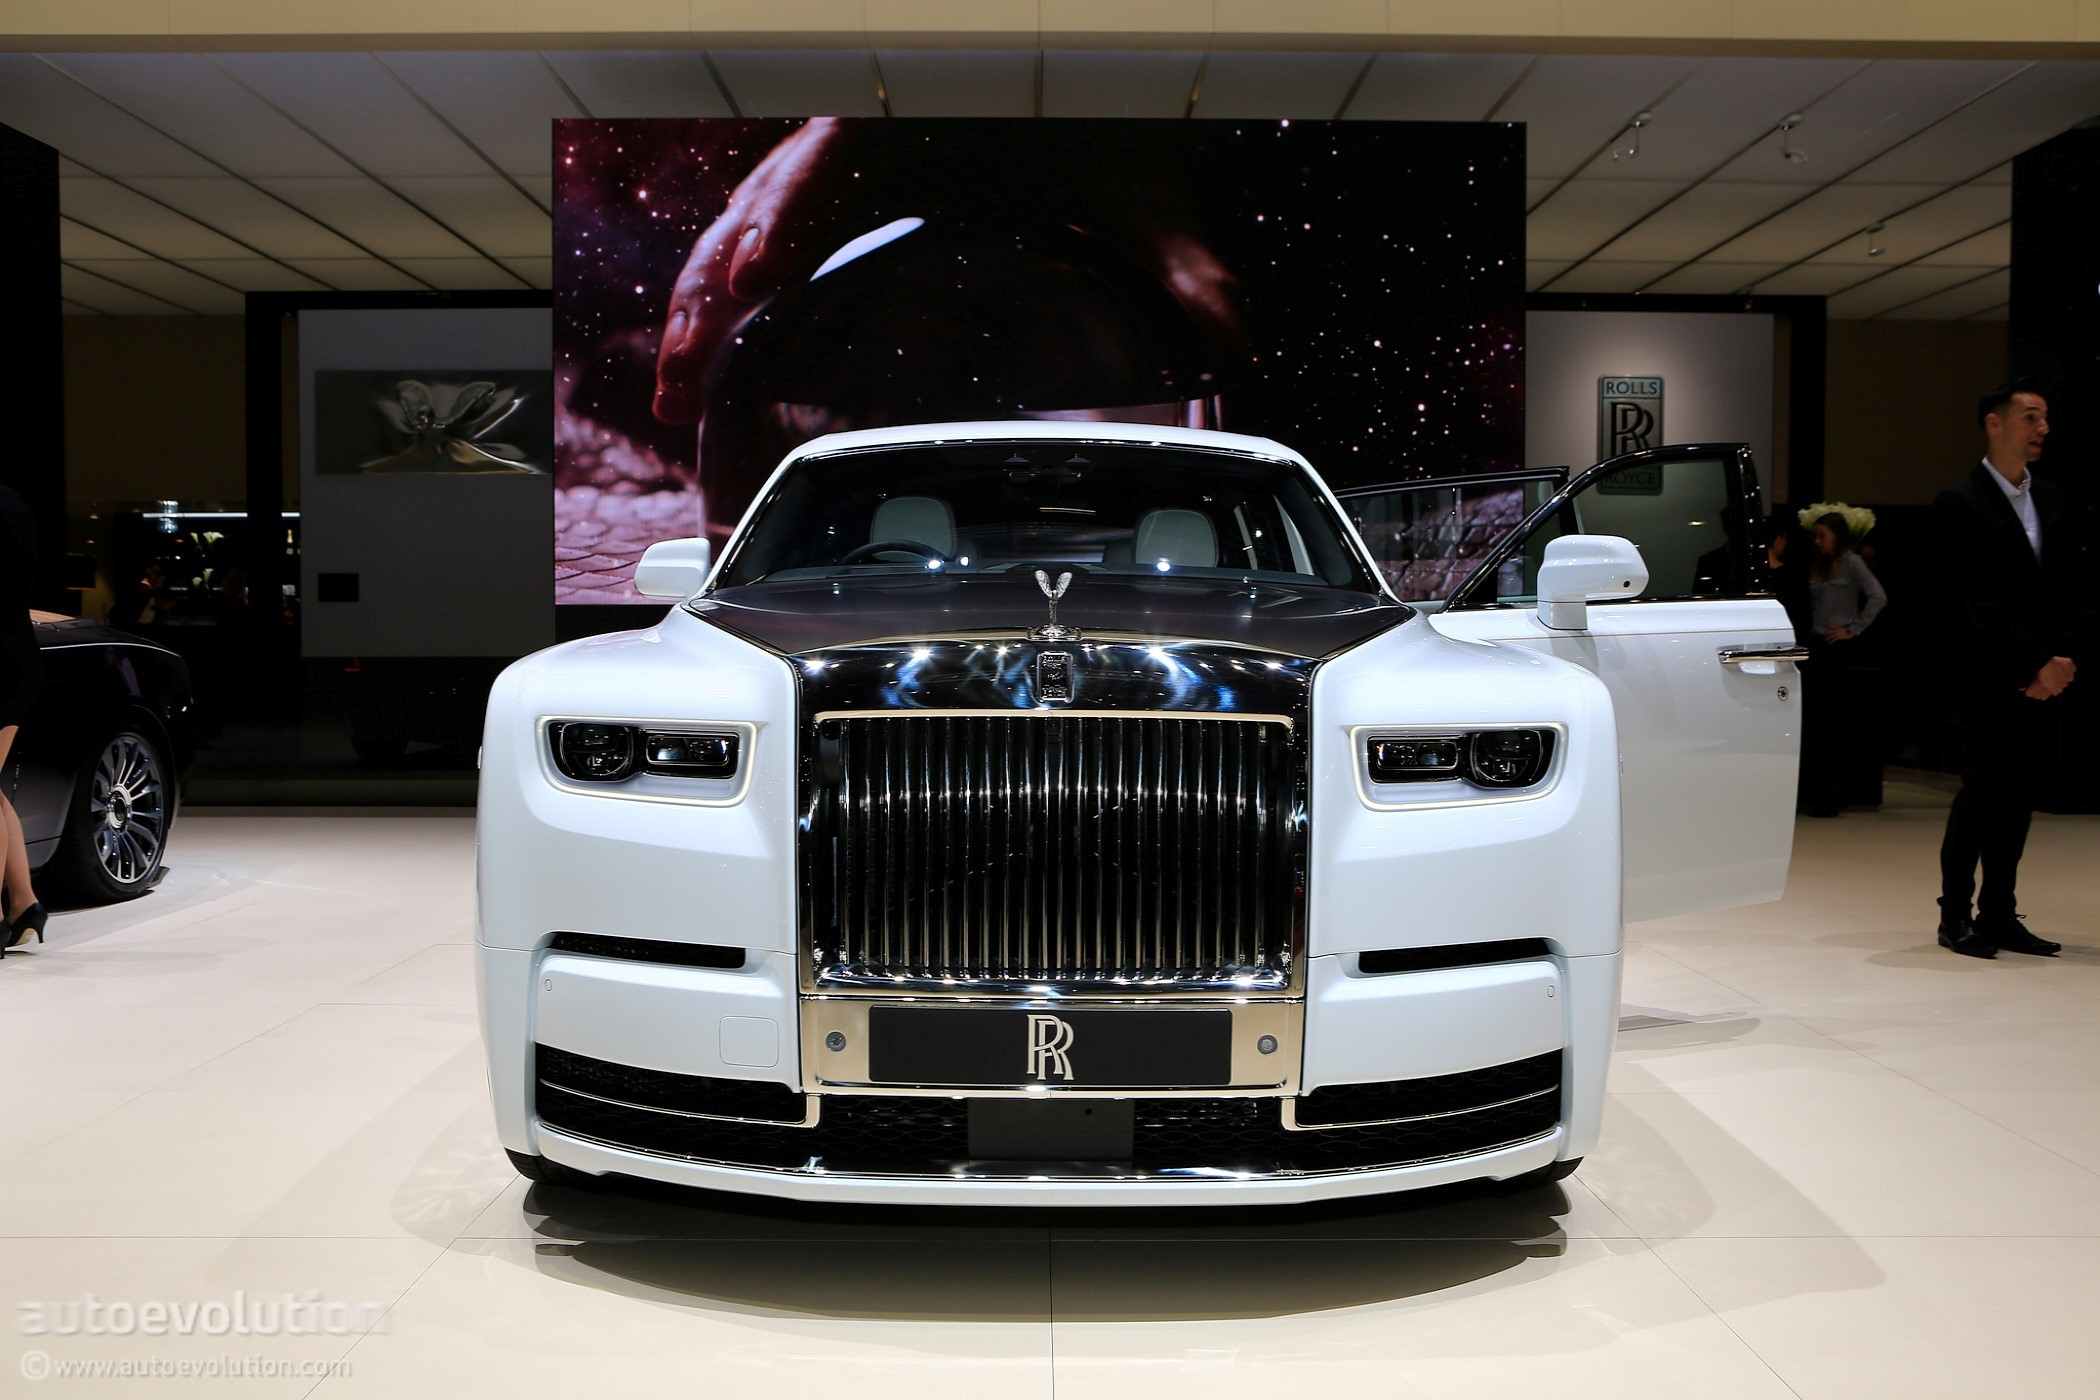 Rolls Royce Phantom Tranquillity Is Dressed To Impress